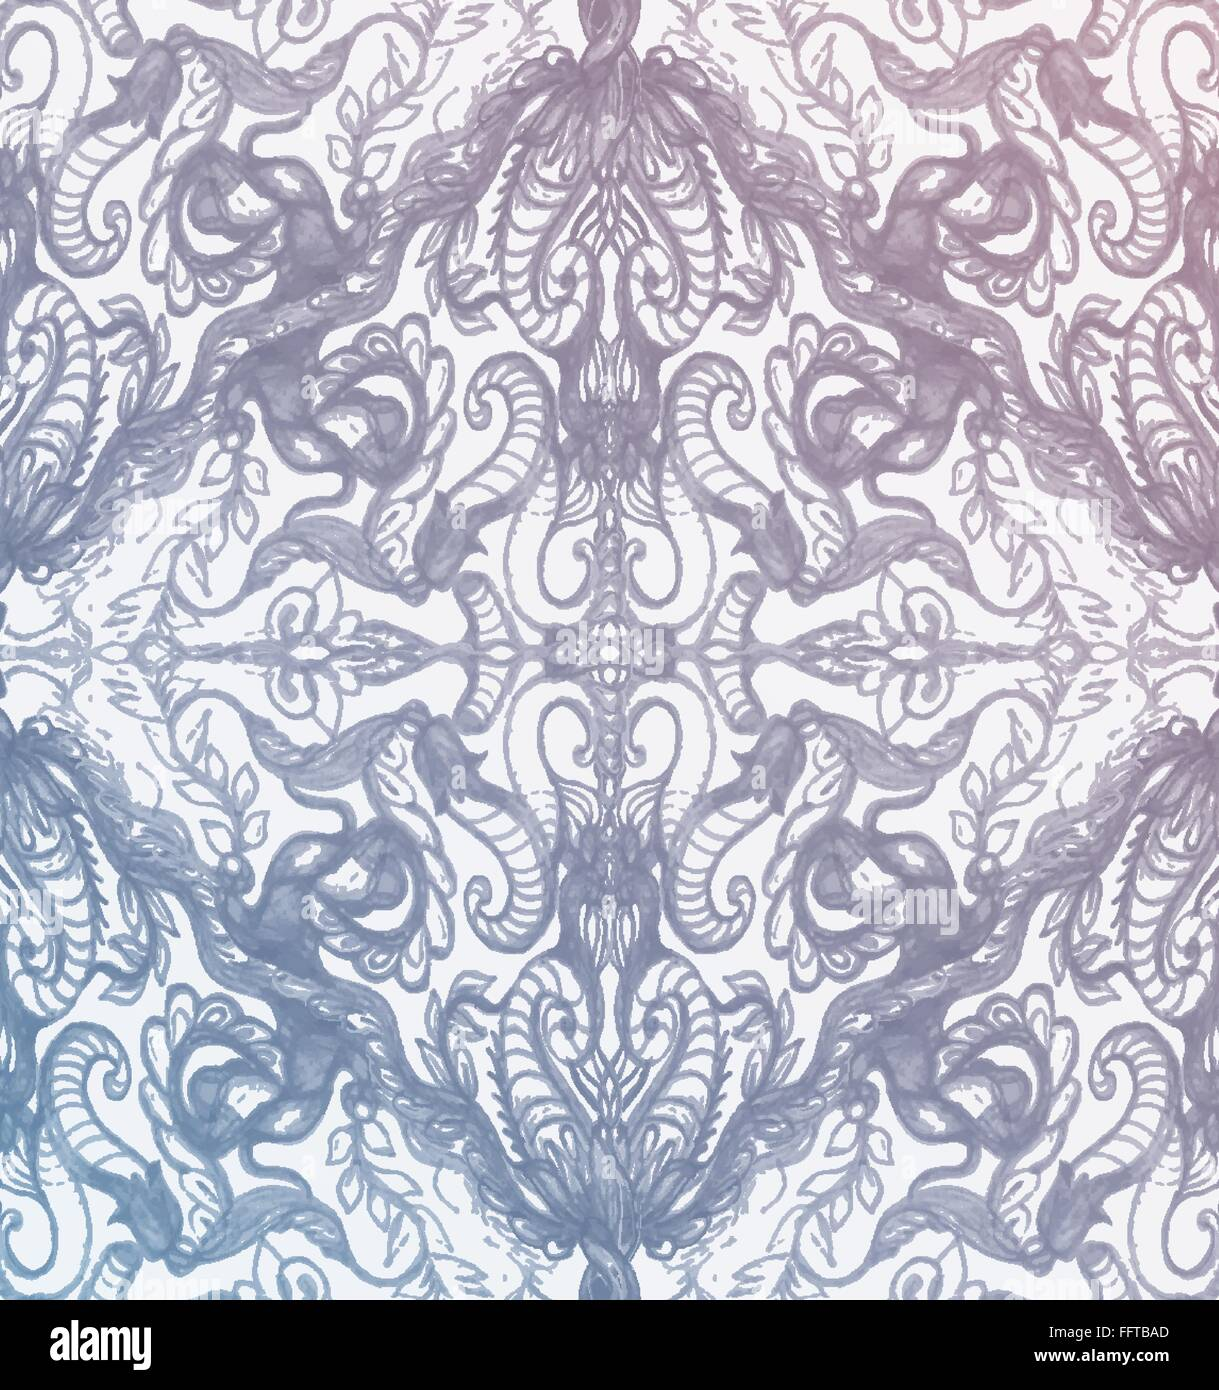 Vintage Pink And Blue Pattern Ornament With Clipping Mask - Stock Image